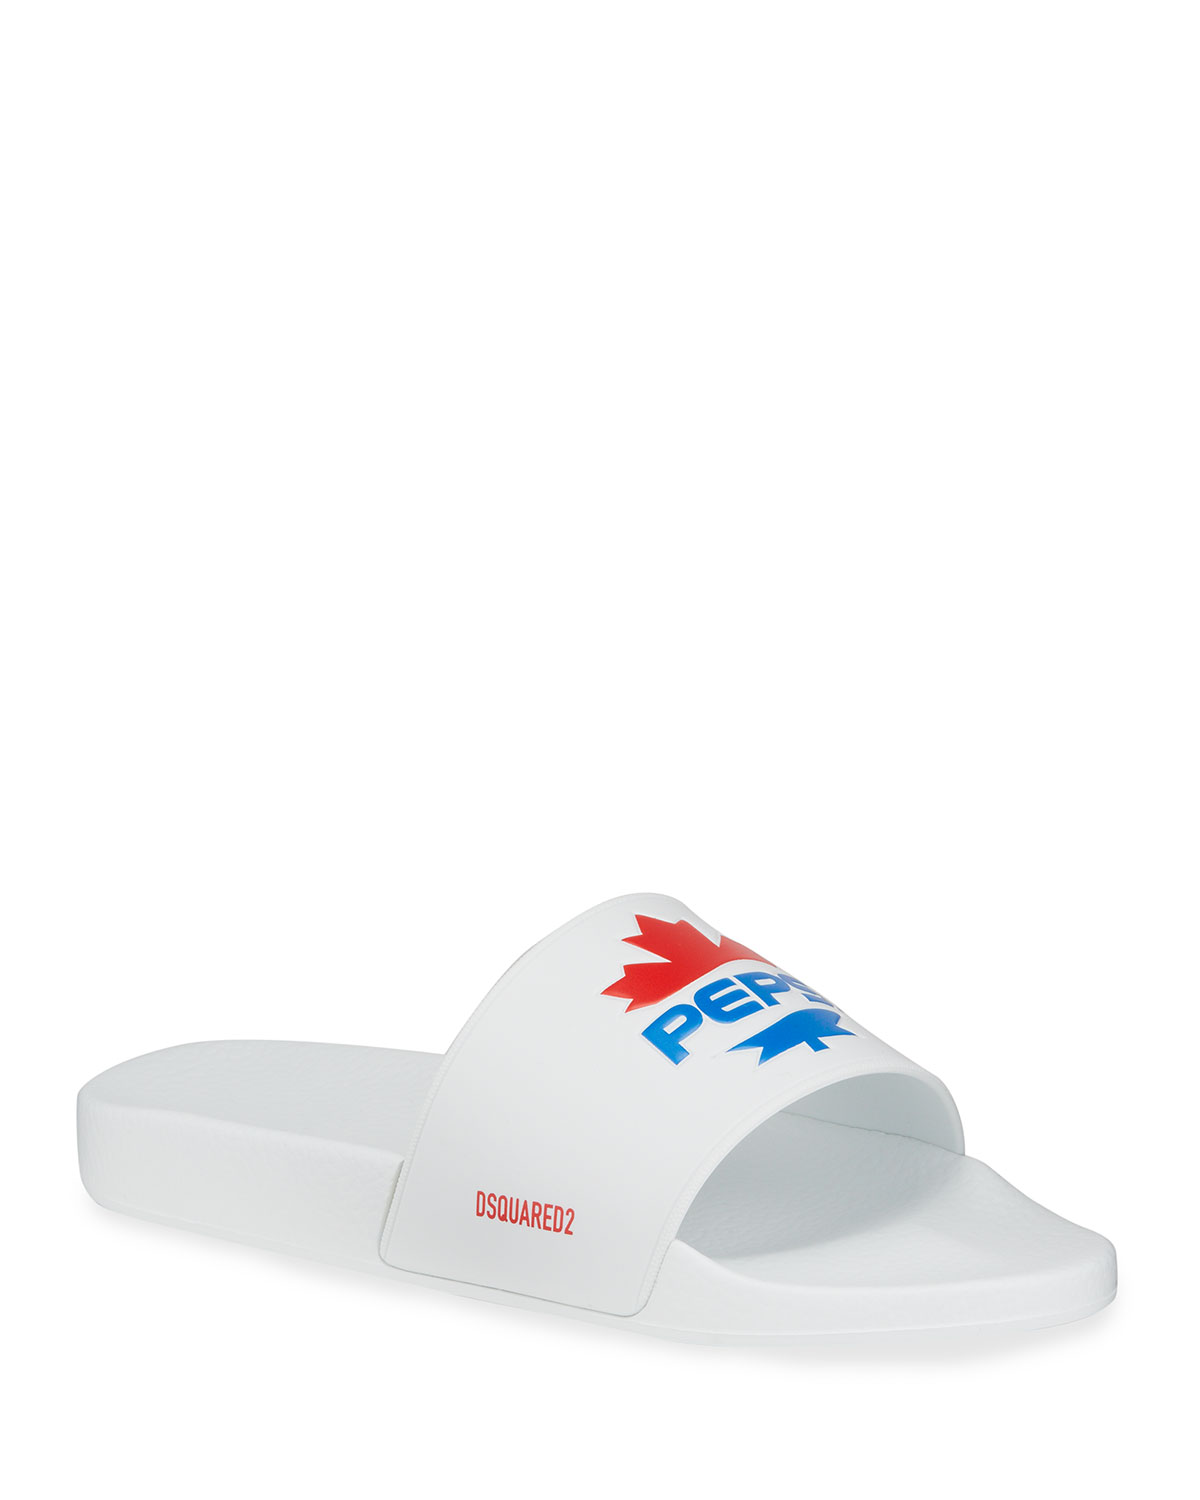 Dsquared2 Men's x Pepsi Maple Leaf Slide Sandals